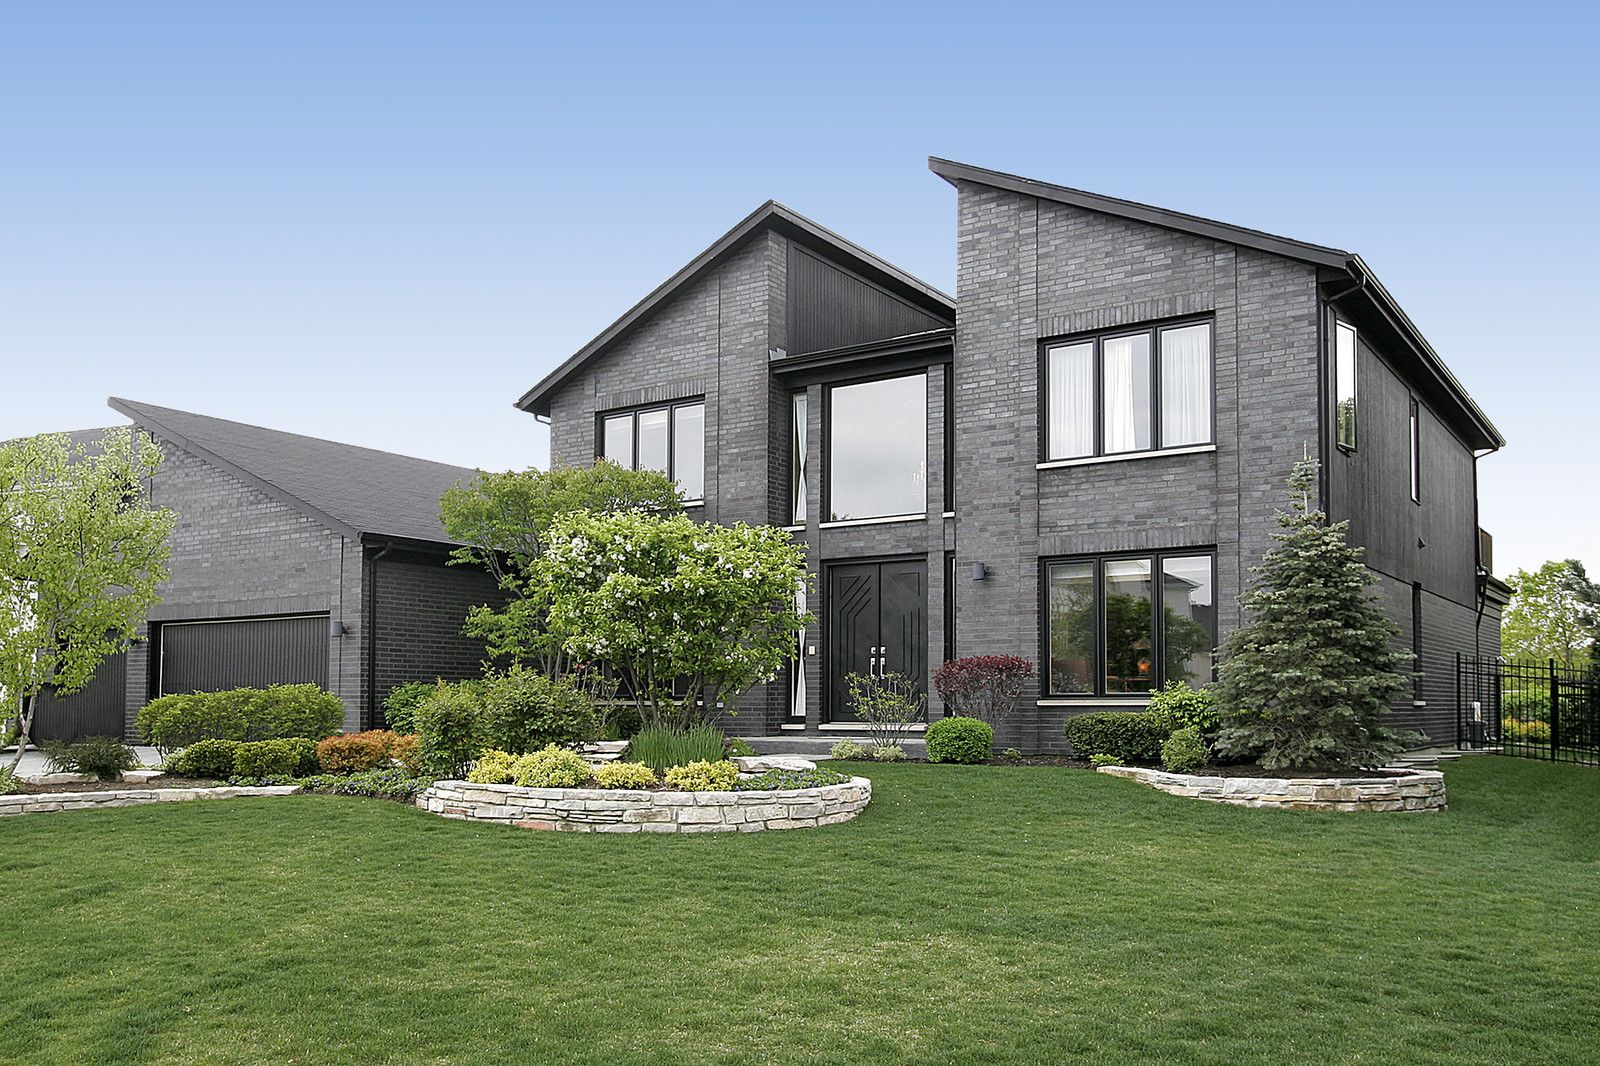 Wenatchee real estate offices free home design ideas images - Modern Home With Gray Brick And Black Door Stock Photo